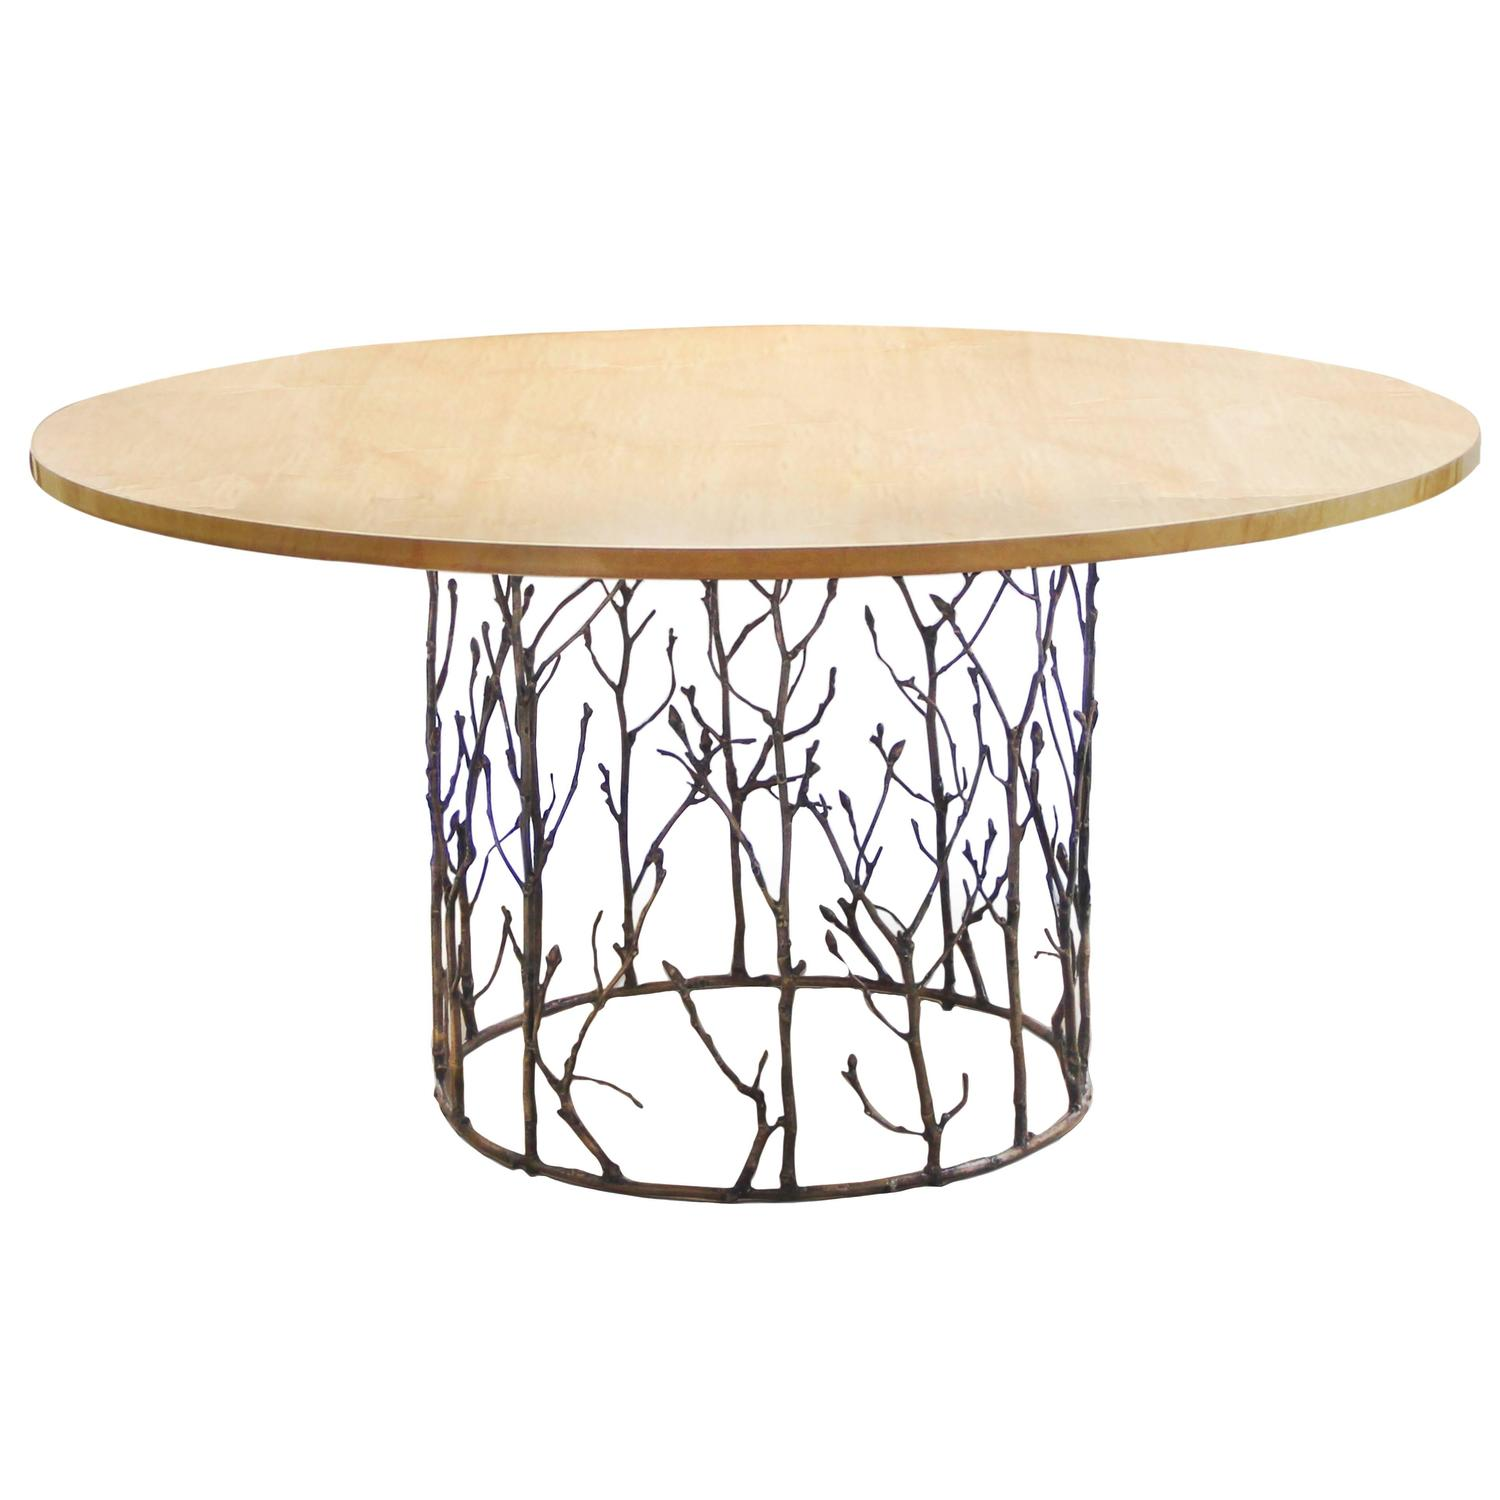 Gold Plated Brass Round Enchanted Dining Table By Koket At 1stdibs